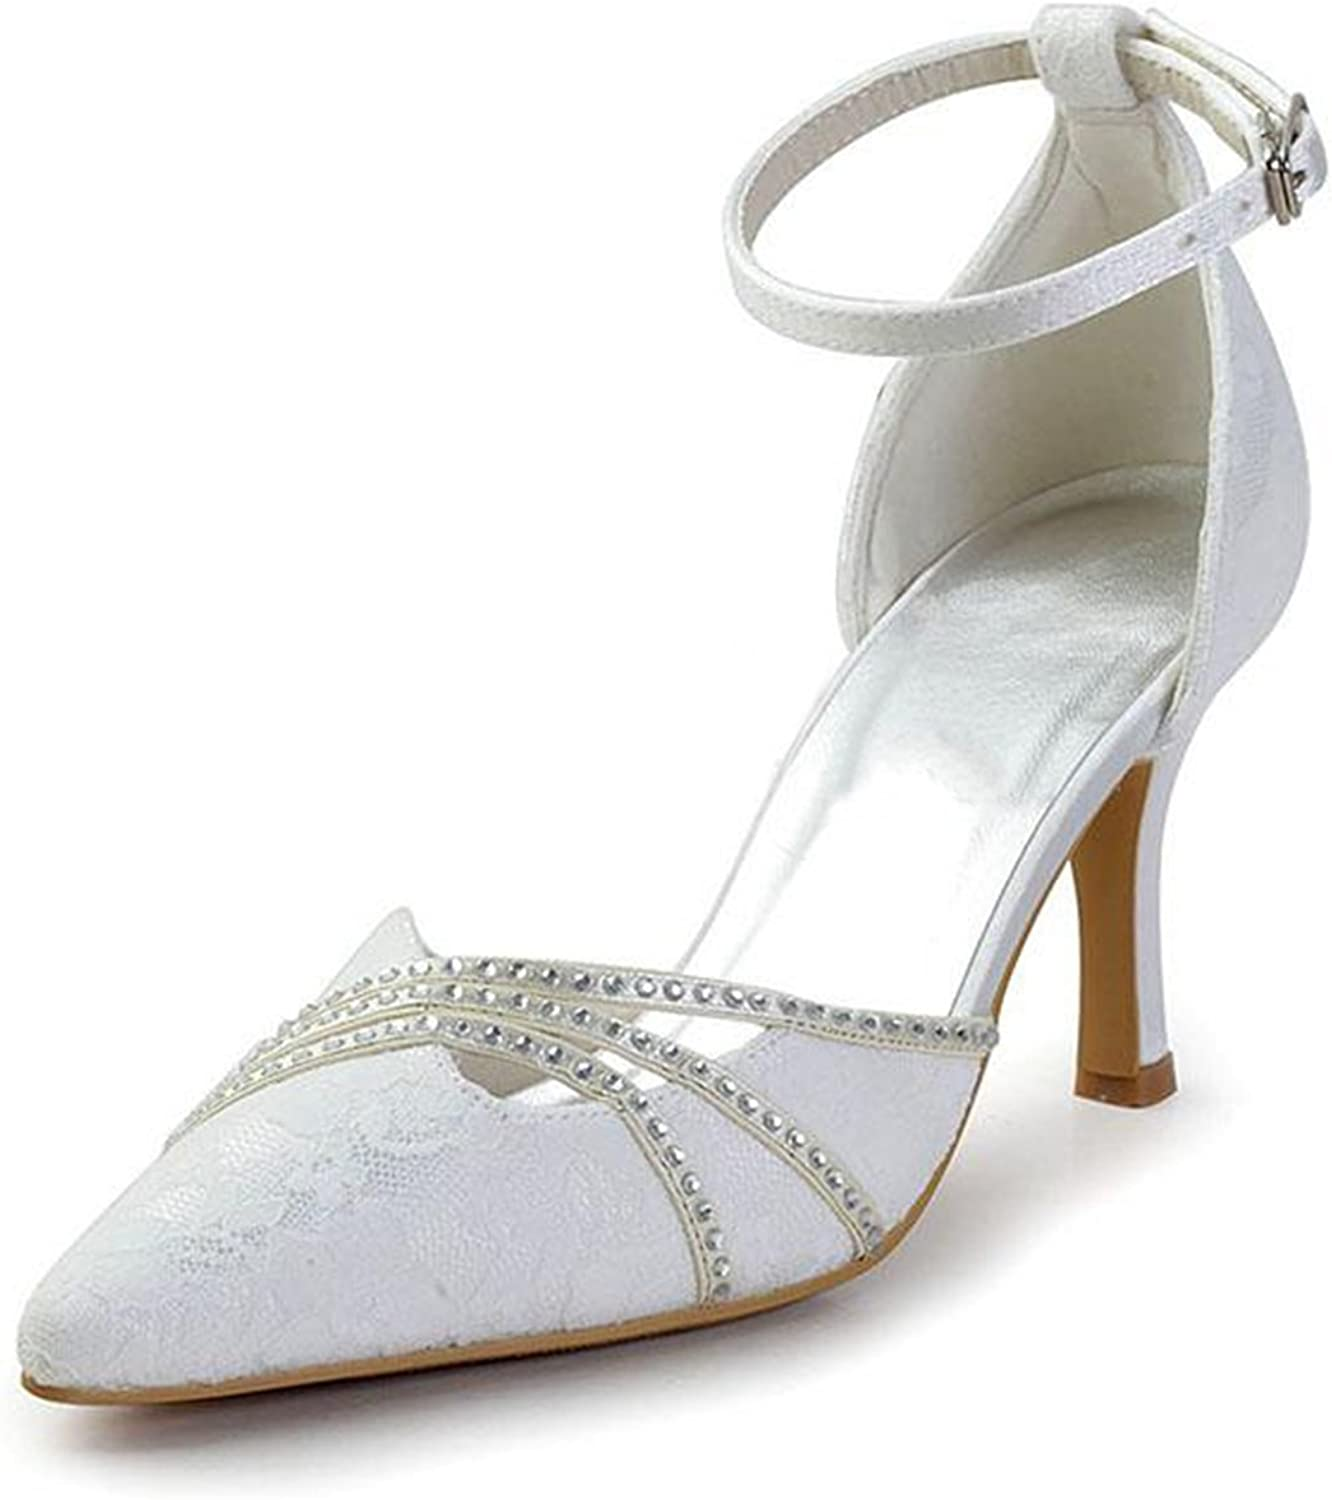 Minishion Girls Womens Ankle Strap Lace Bridal Wedding Party Pumps shoes